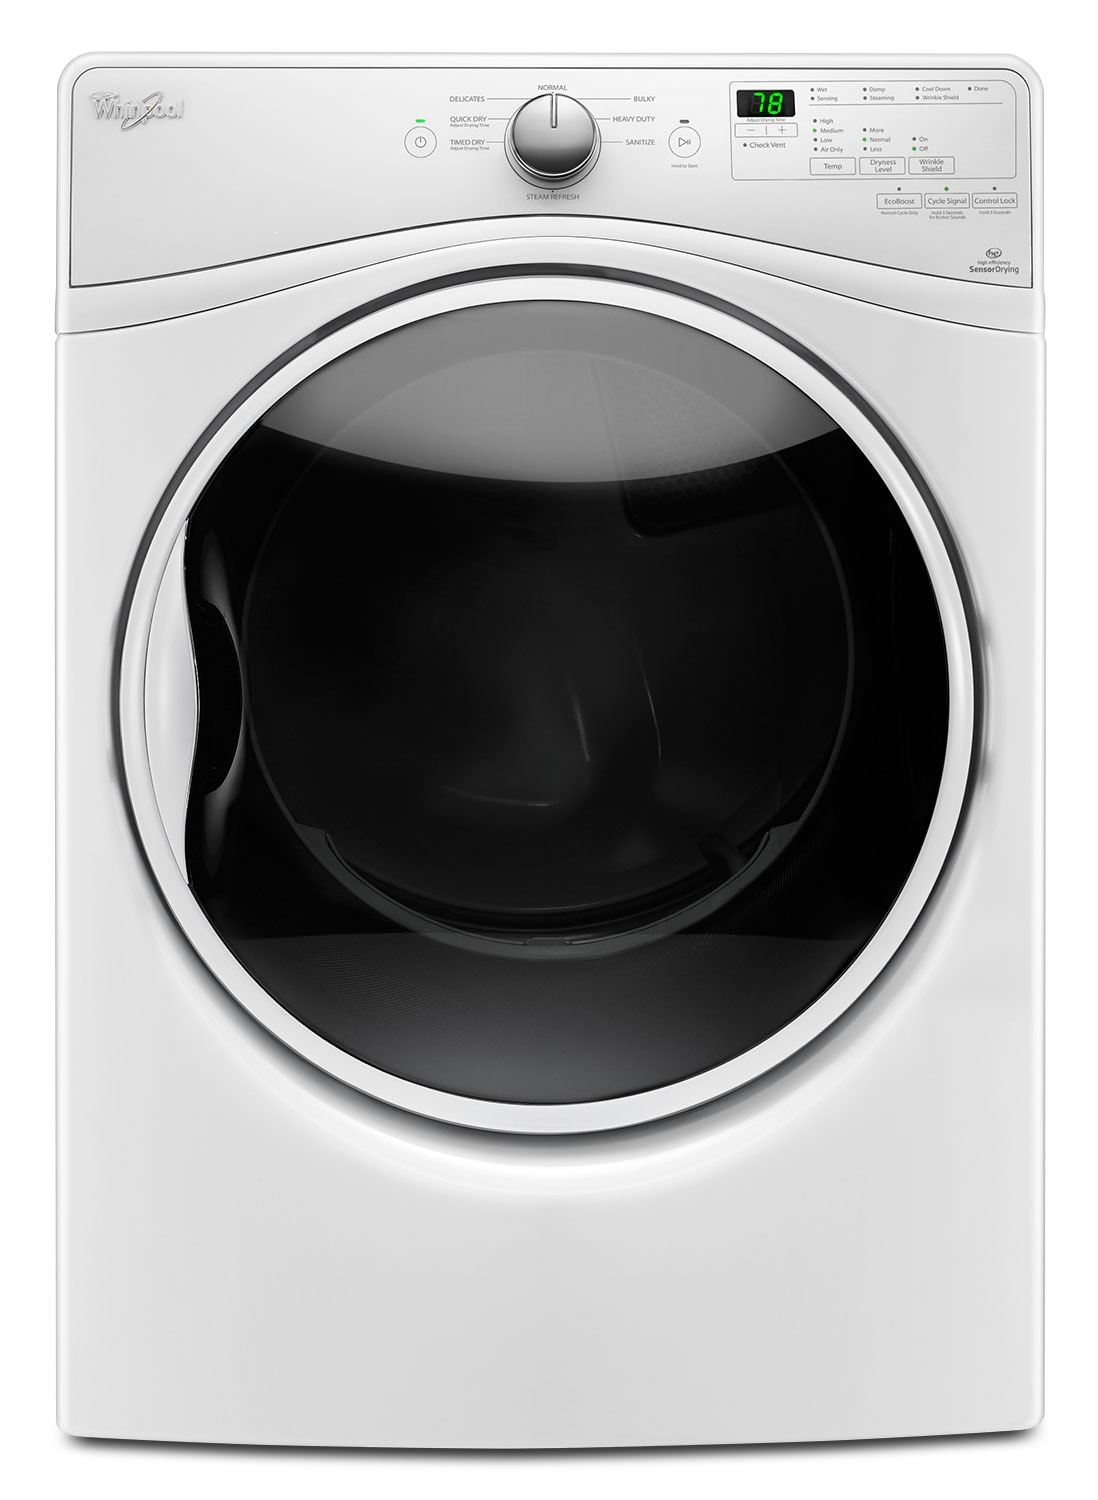 Washers and Dryers - Whirlpool 7.0 Cu. Ft. Electric Dryer – YWED85HEFW